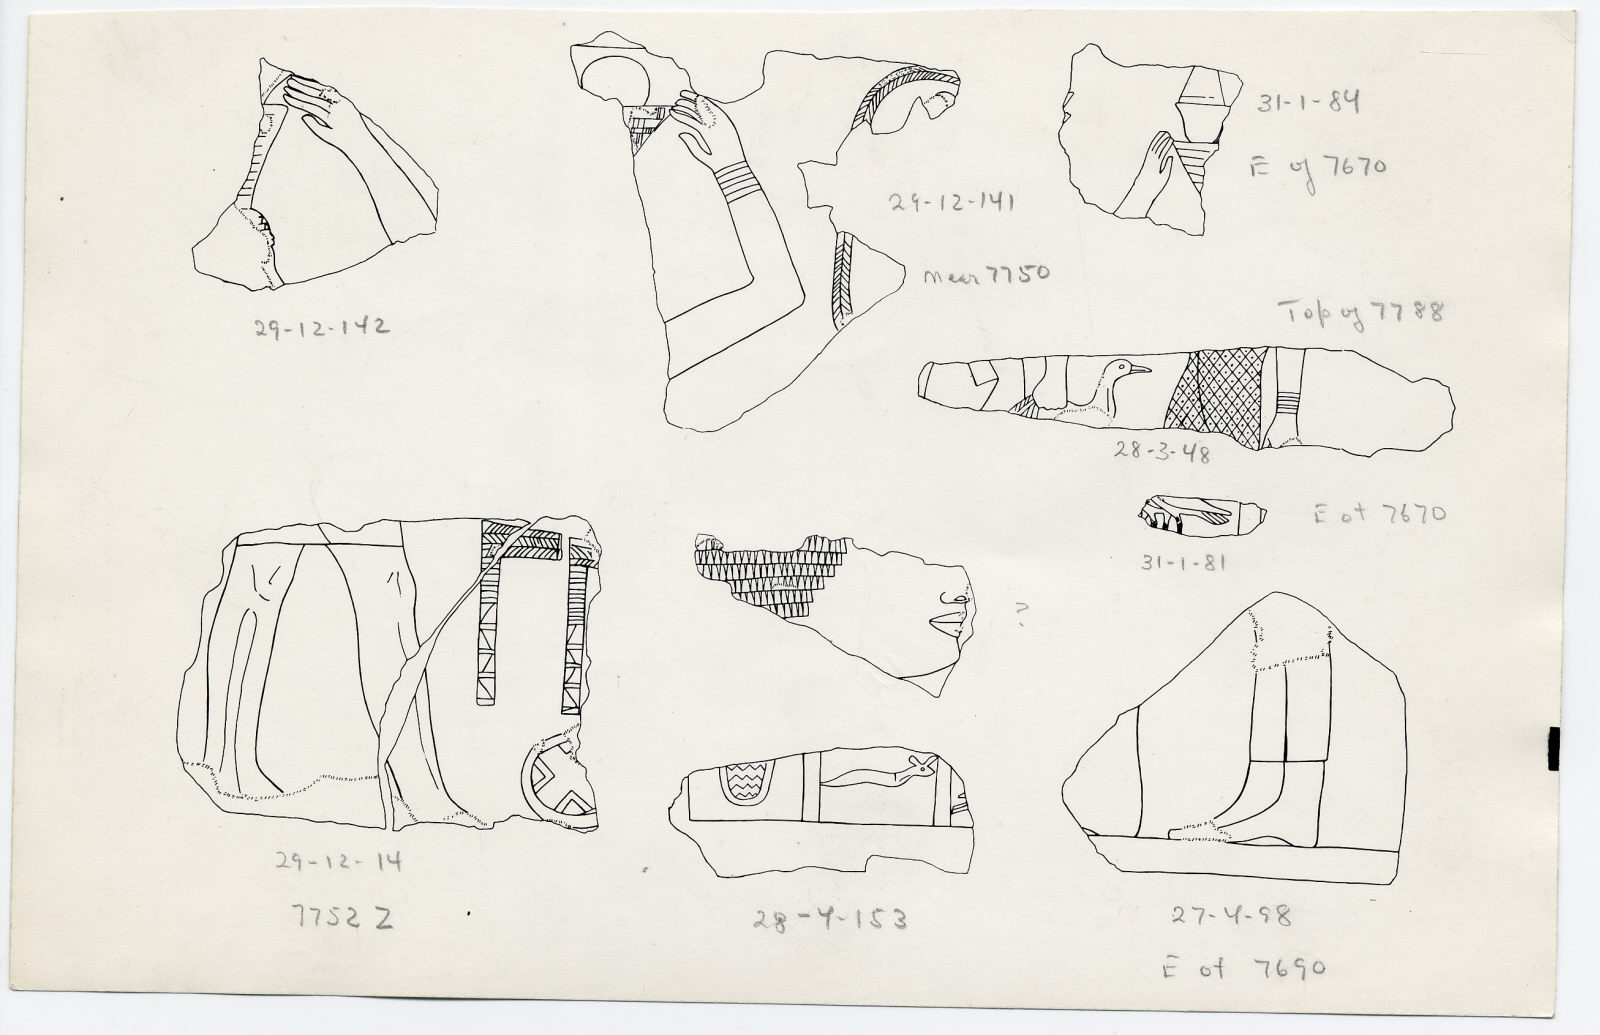 Drawings: Fragments of relief from Street G 7500, G 7650, G 7670, G 7690, G 7752, G 7788